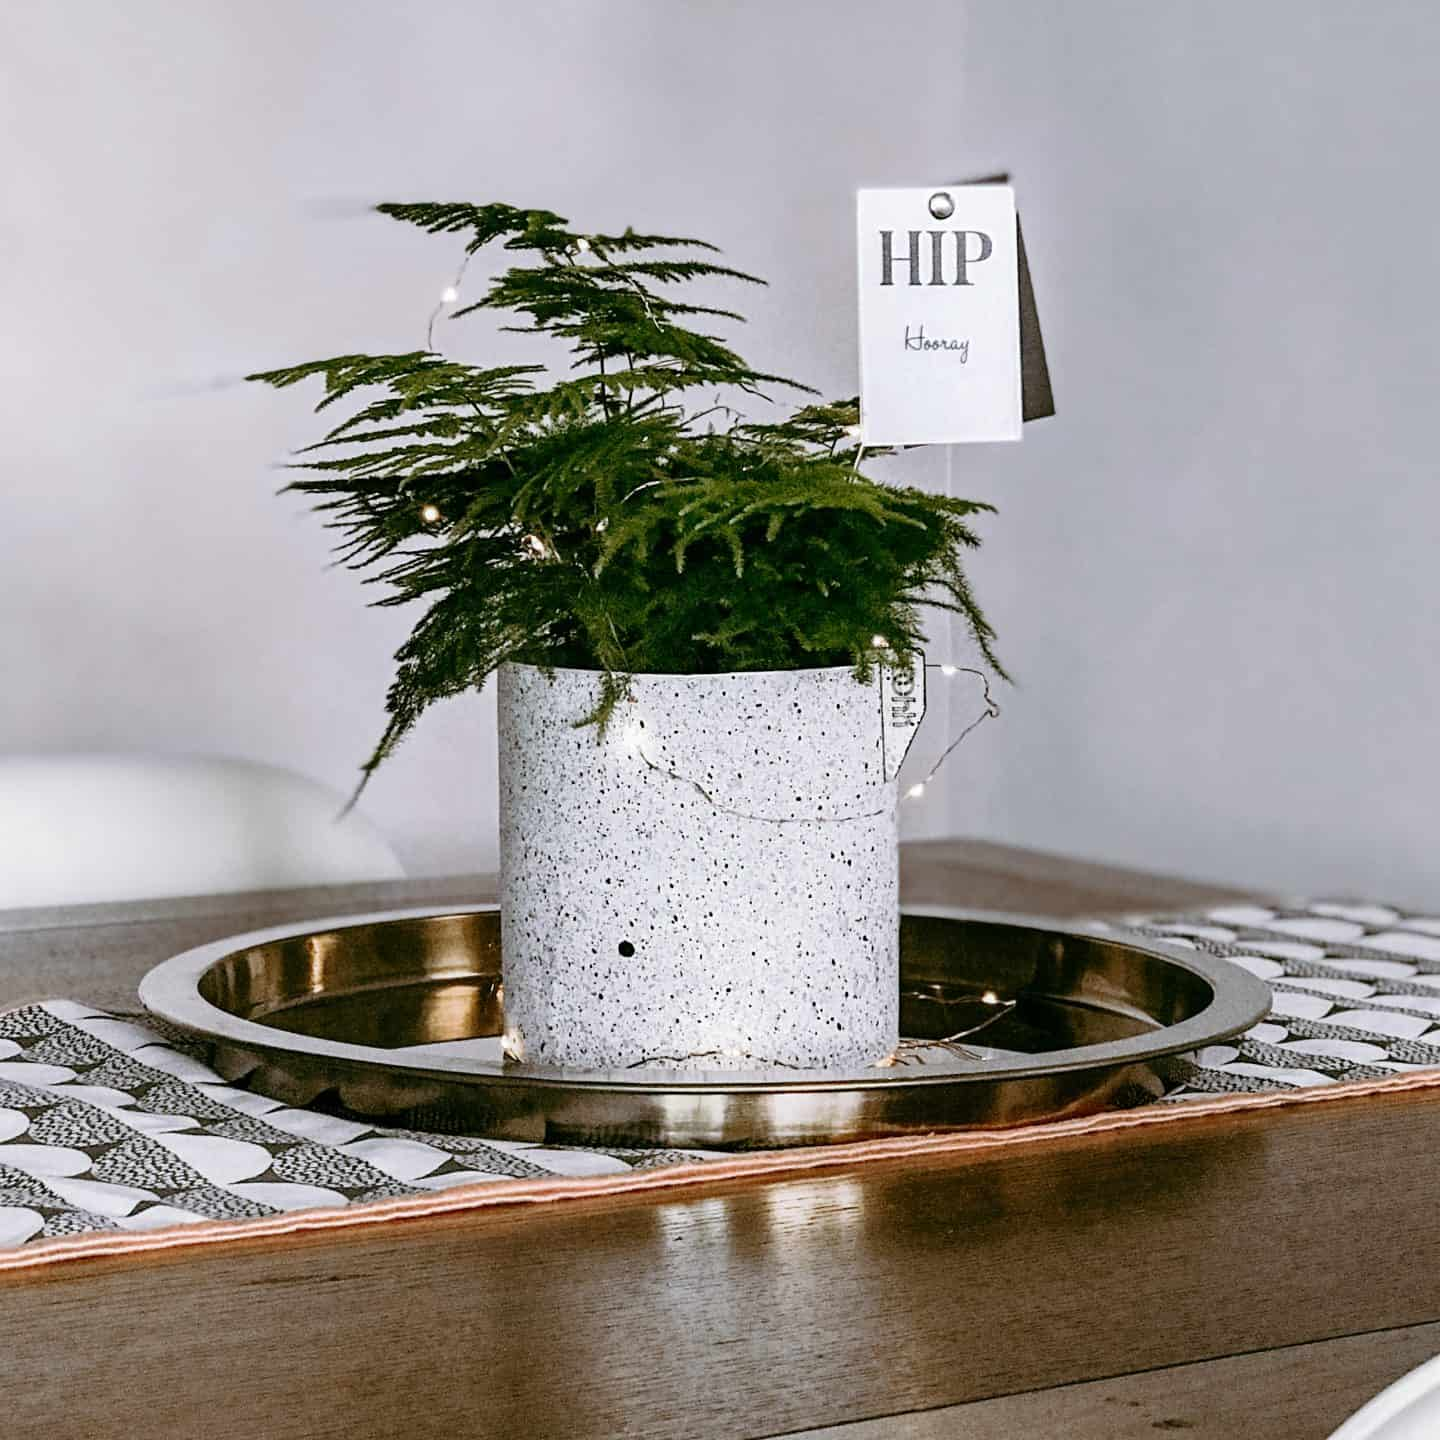 Martin & Cox Living Gifts plant